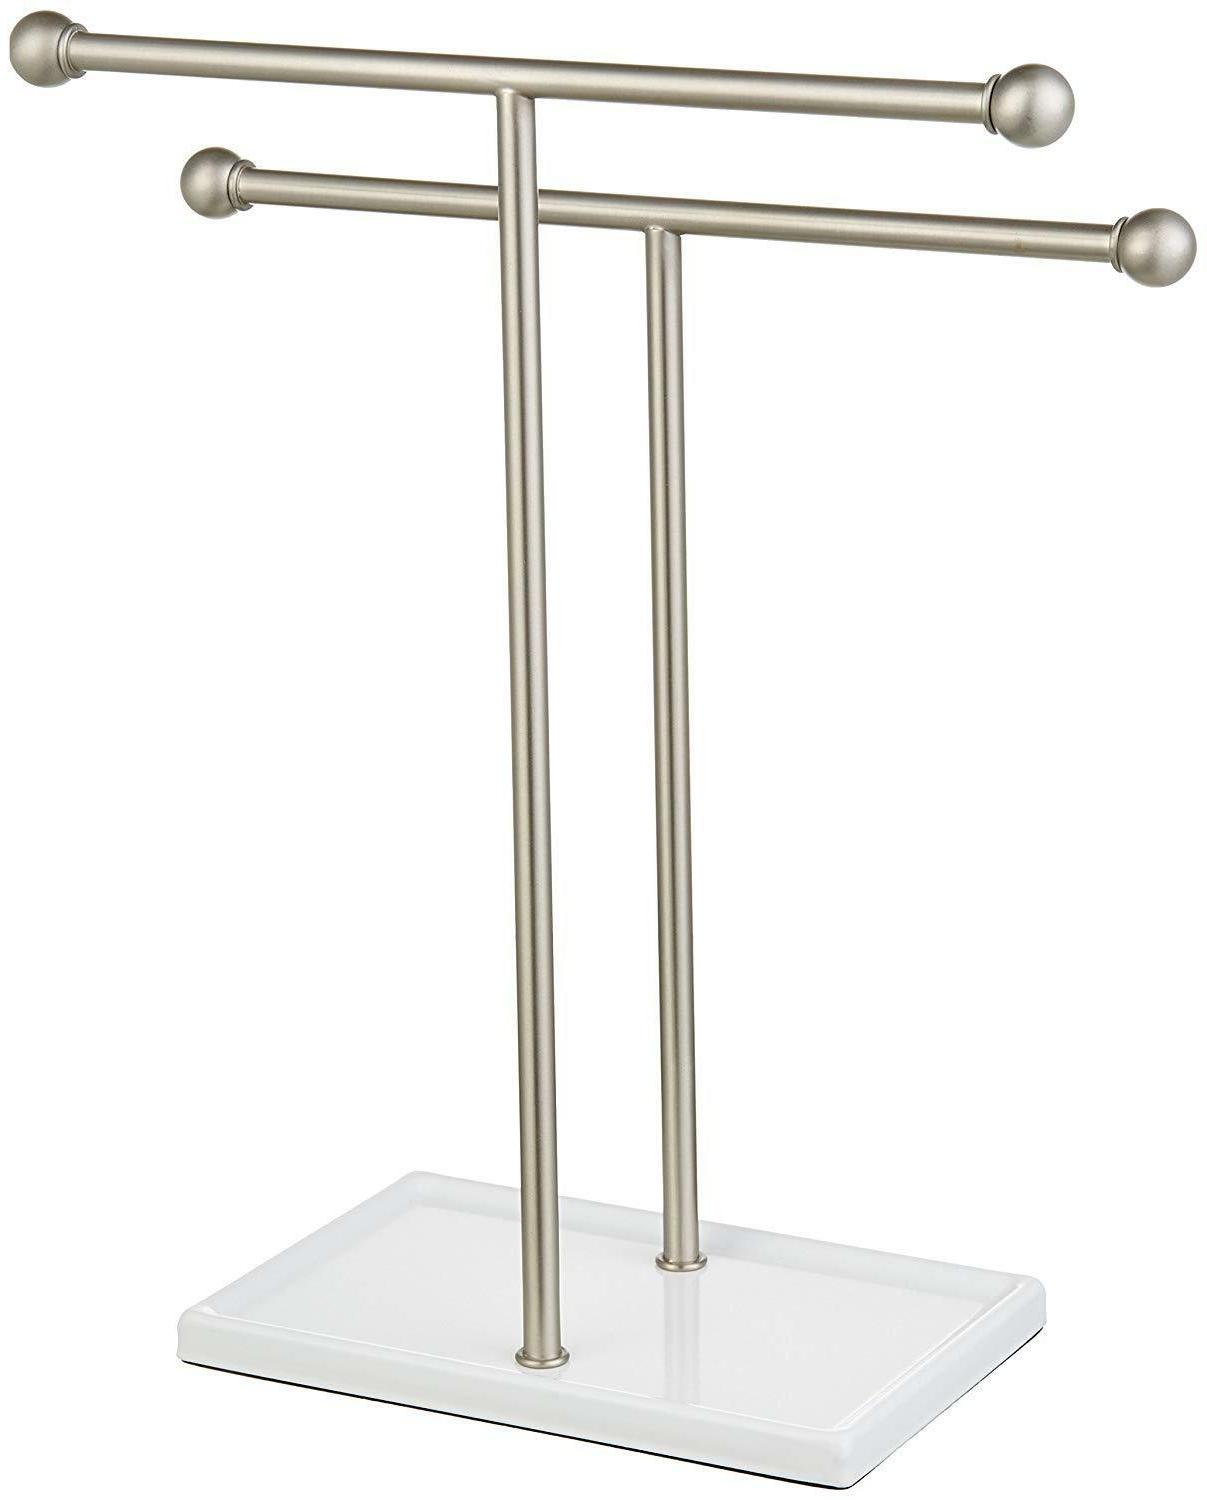 and Accessories Stand Nickel/White